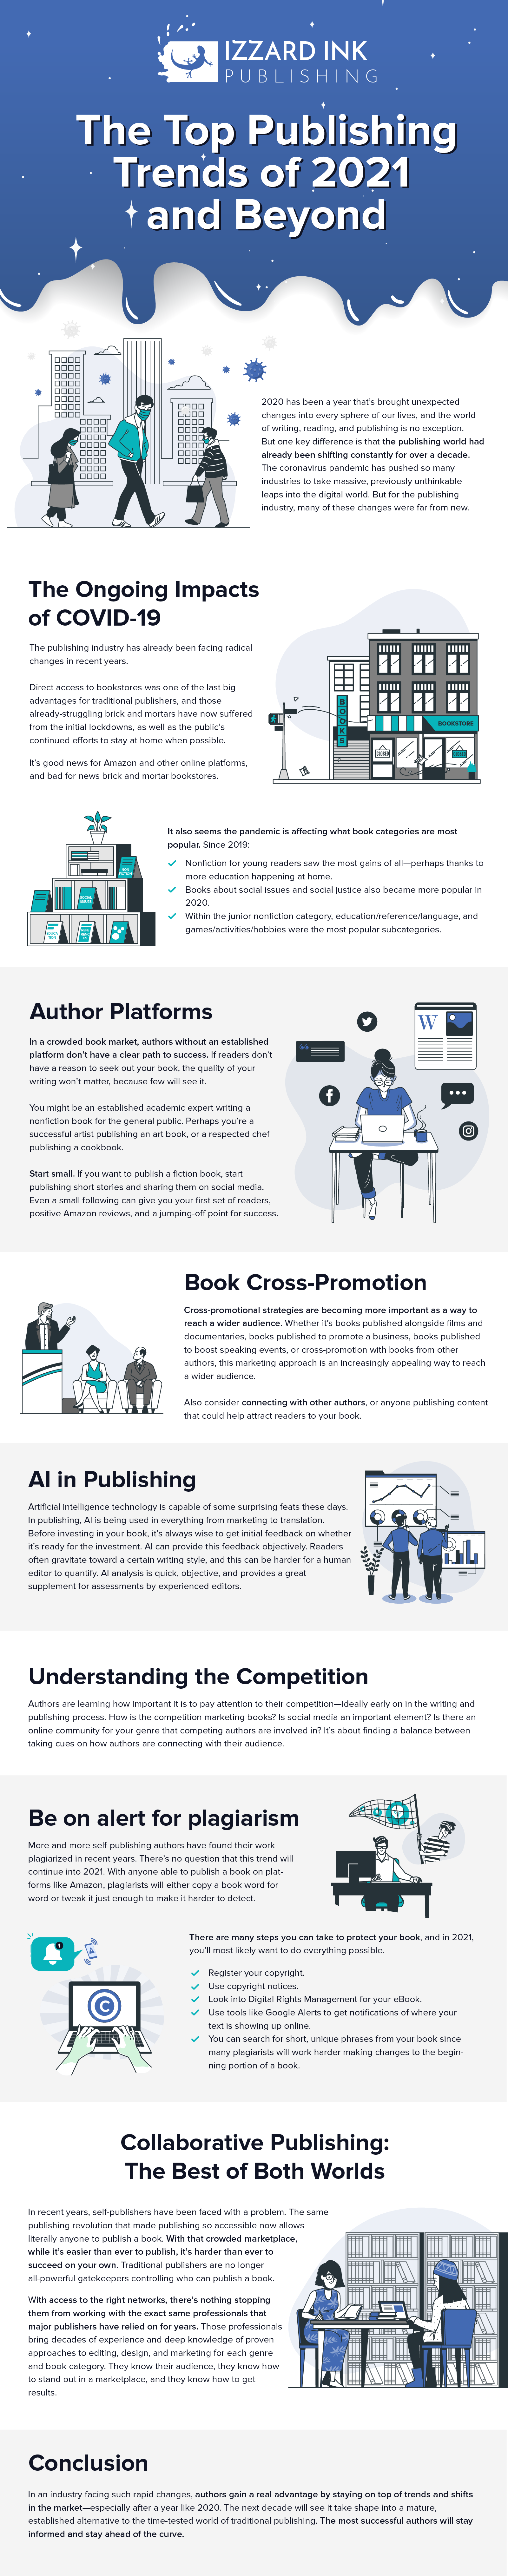 The Top Publishing Trends of 2021 and Beyond